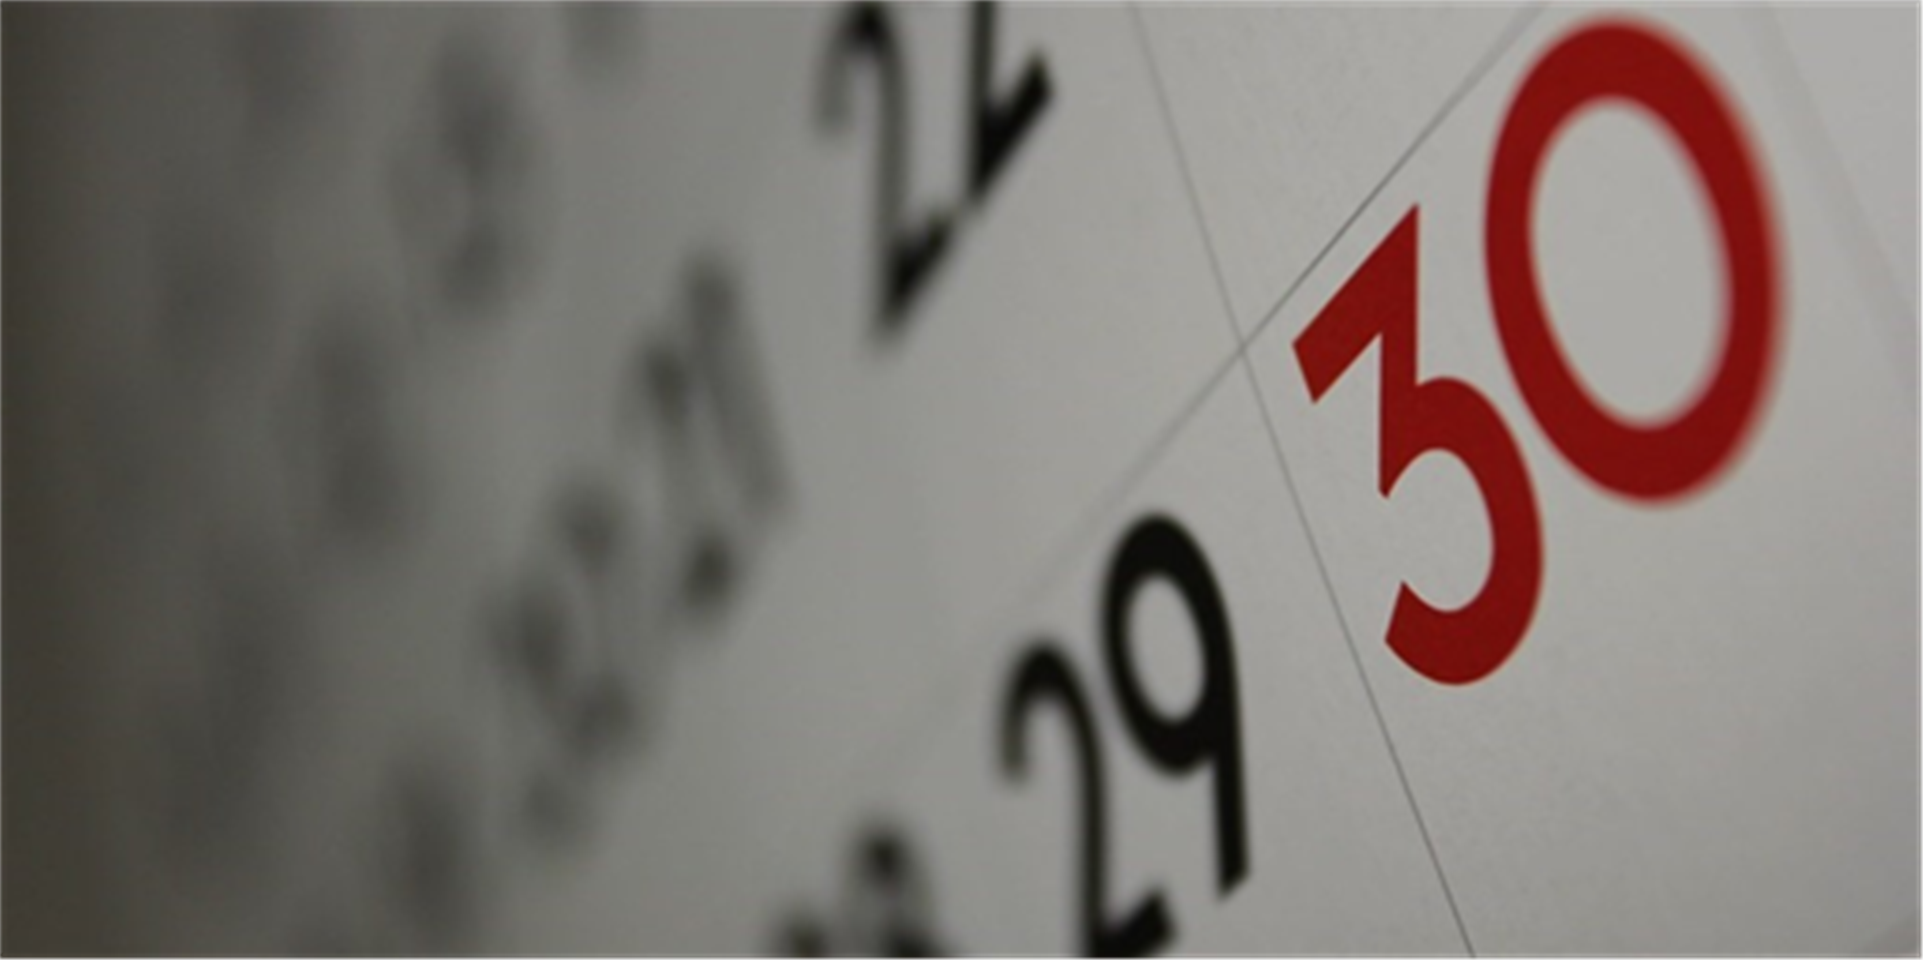 Zoomed in angle of a calendar with the final date, 30, in red